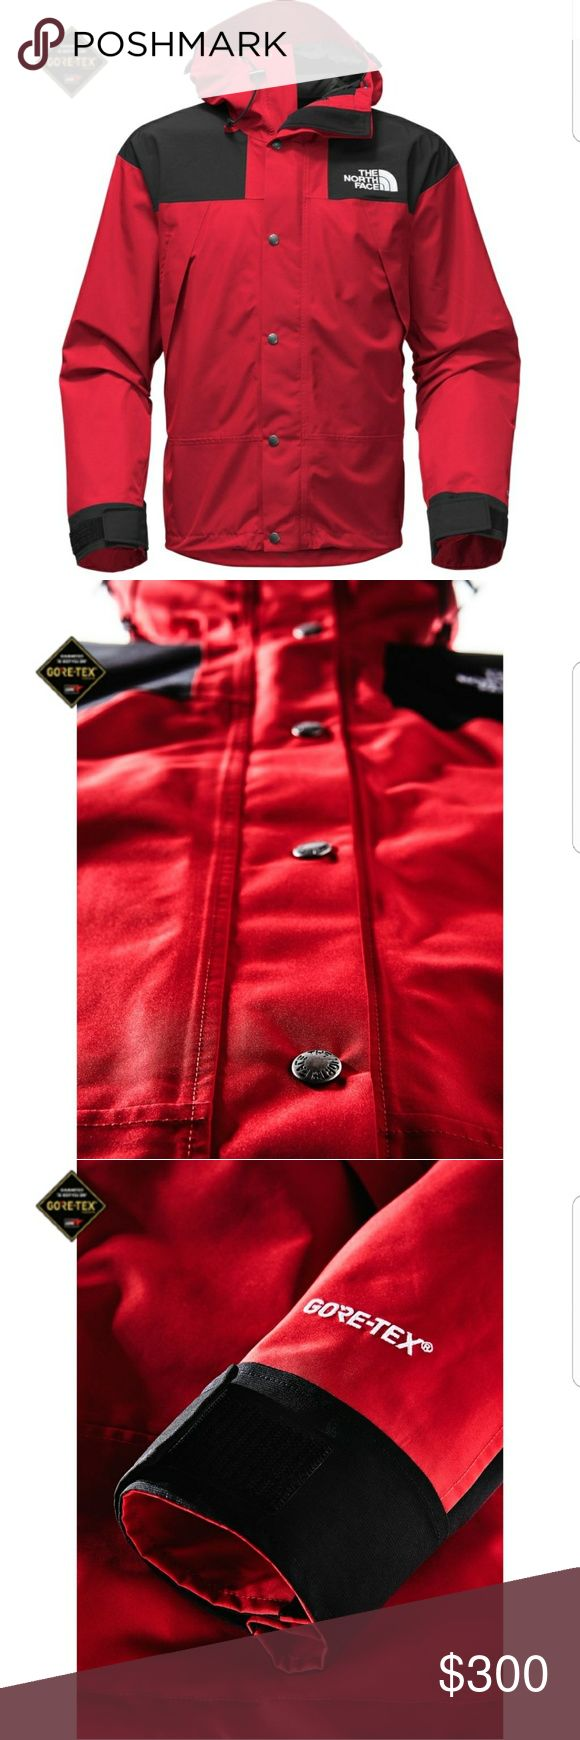 North Face   Men's 1990 Mountain Jacket Gortex Men's North Face 1990 Gortex Mountain Jacket in excellent, like new condition. No flaws. This jacket comes with a lot of nice features including a hood that tucks into the collar, snow skirt, arm pit vents, & a lot of zip pockets. Jacket sold out everywhere online! Lifetime quality guarantee by North Face. 1990s throwback style. Oversized fit. Could probably fit a medium. NF has a handy size finder on their site if youre concerned. 29in length…